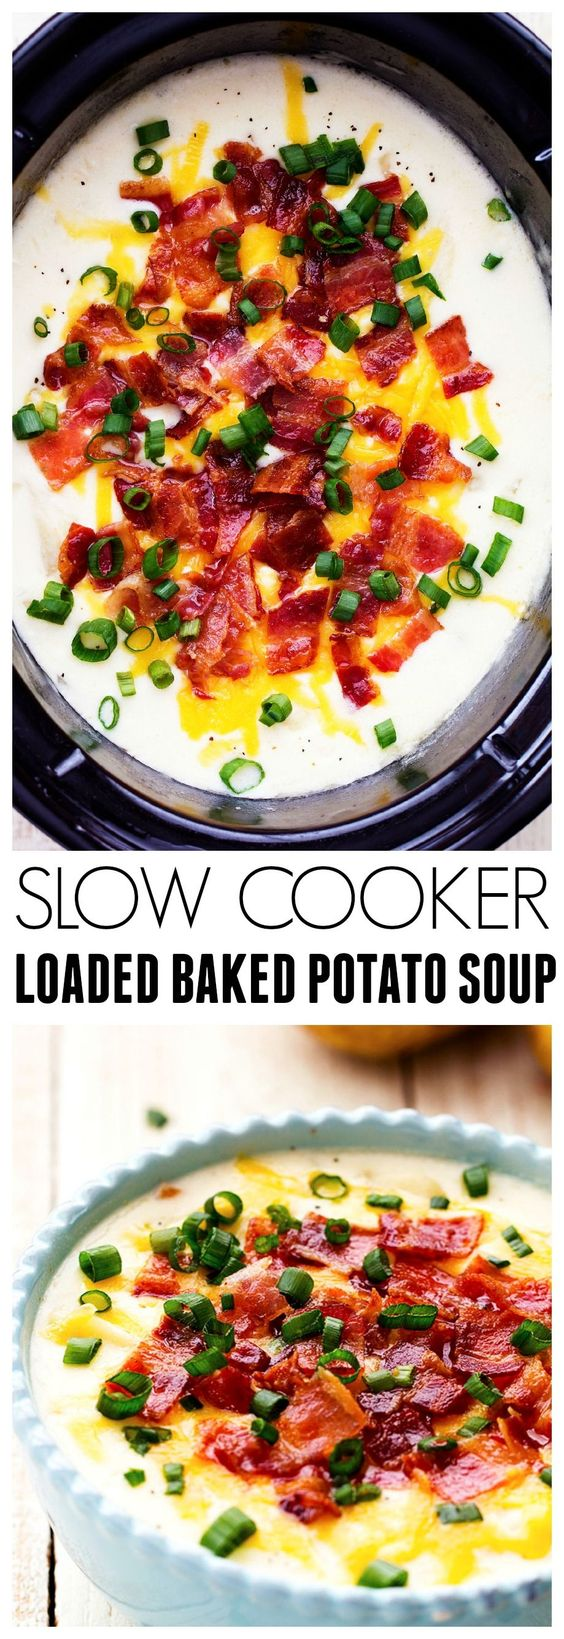 This is the BEST slow cooker Loaded Baked Potato Soup that you will ever have! Creamy and delicious and loaded with all of the goodness of a baked potato!